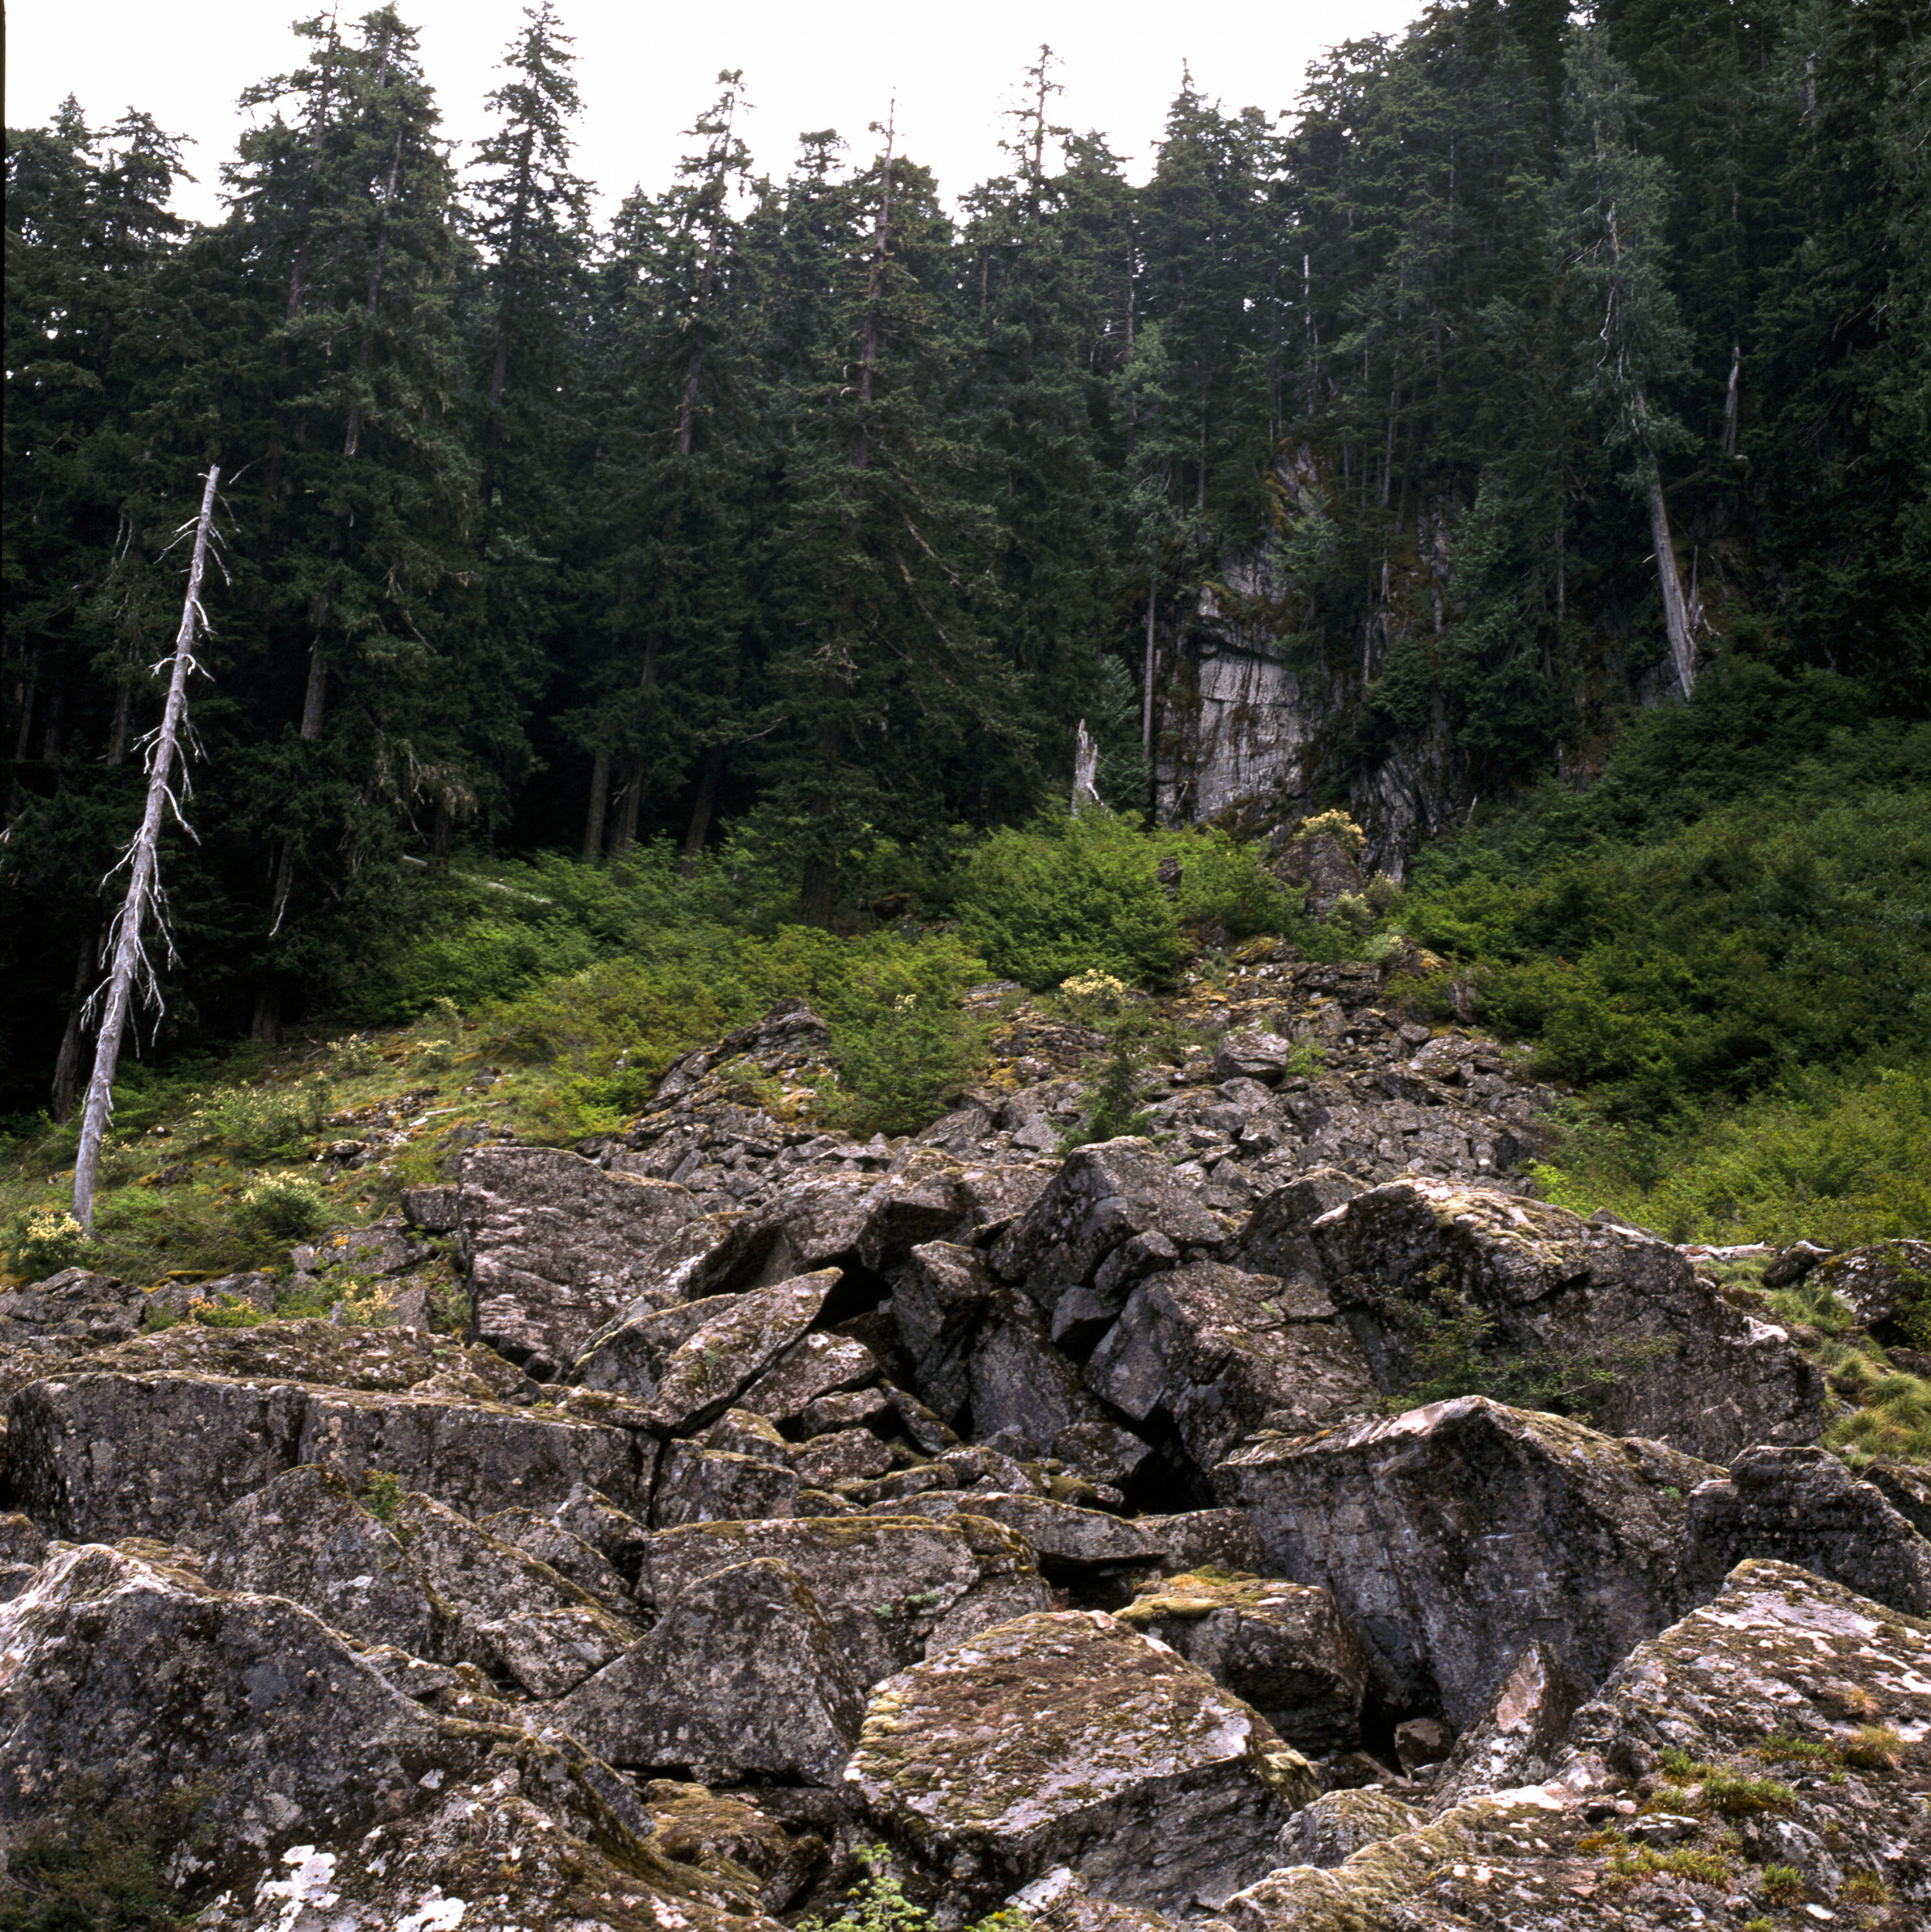 The Rewilding Area of Lost Lake Boulders, looking up to the cliff side in the woods.